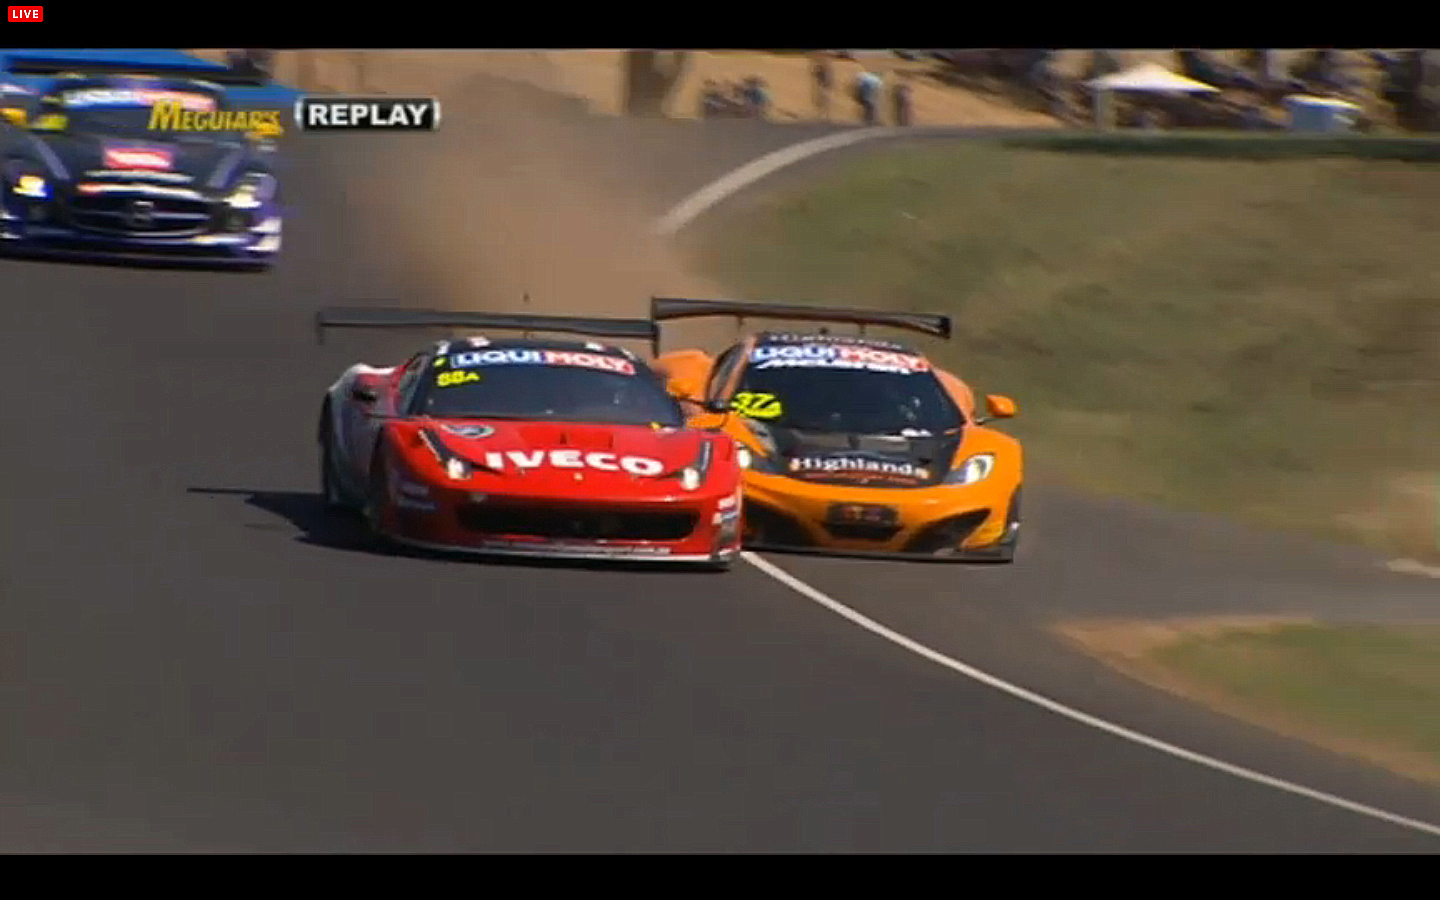 Shane Van Gisbergen in the #37 McLaren almost wrecks trying to pass Mika Salo in the #88 Maranello Ferrari. (bathurst12hour.com.au)